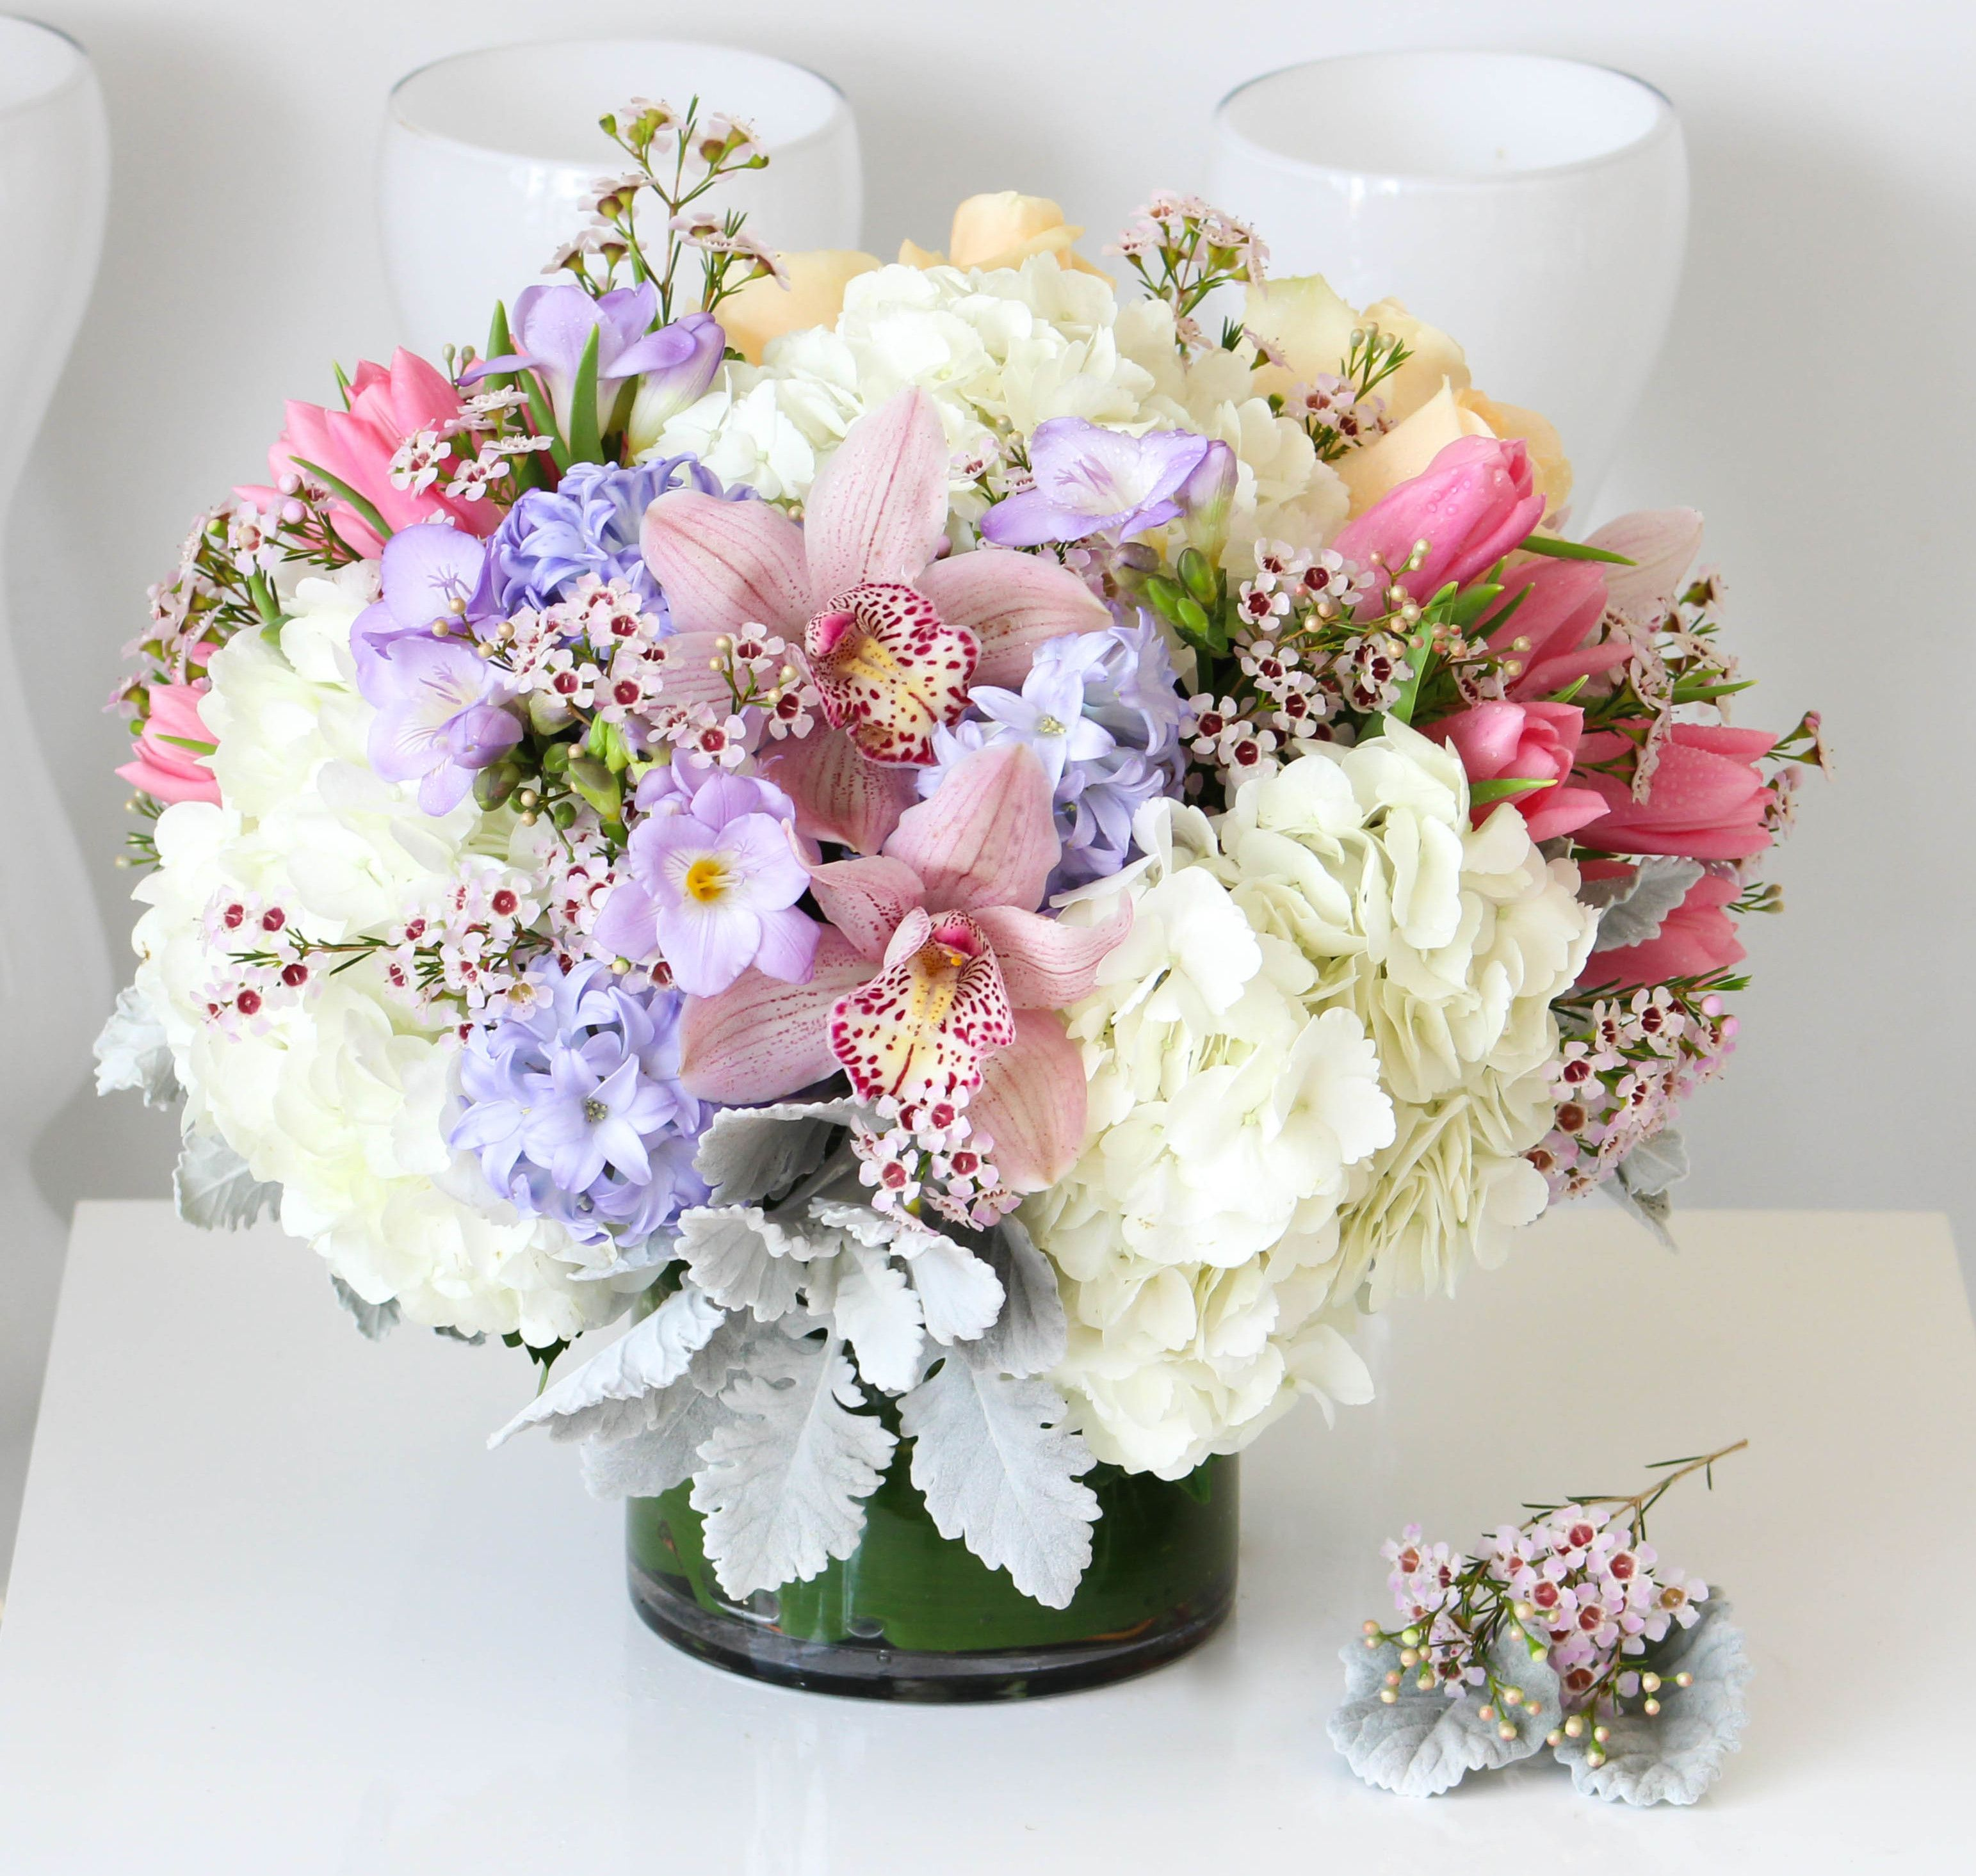 Send the Blissful bouquet of flowers from Sonny Alexander